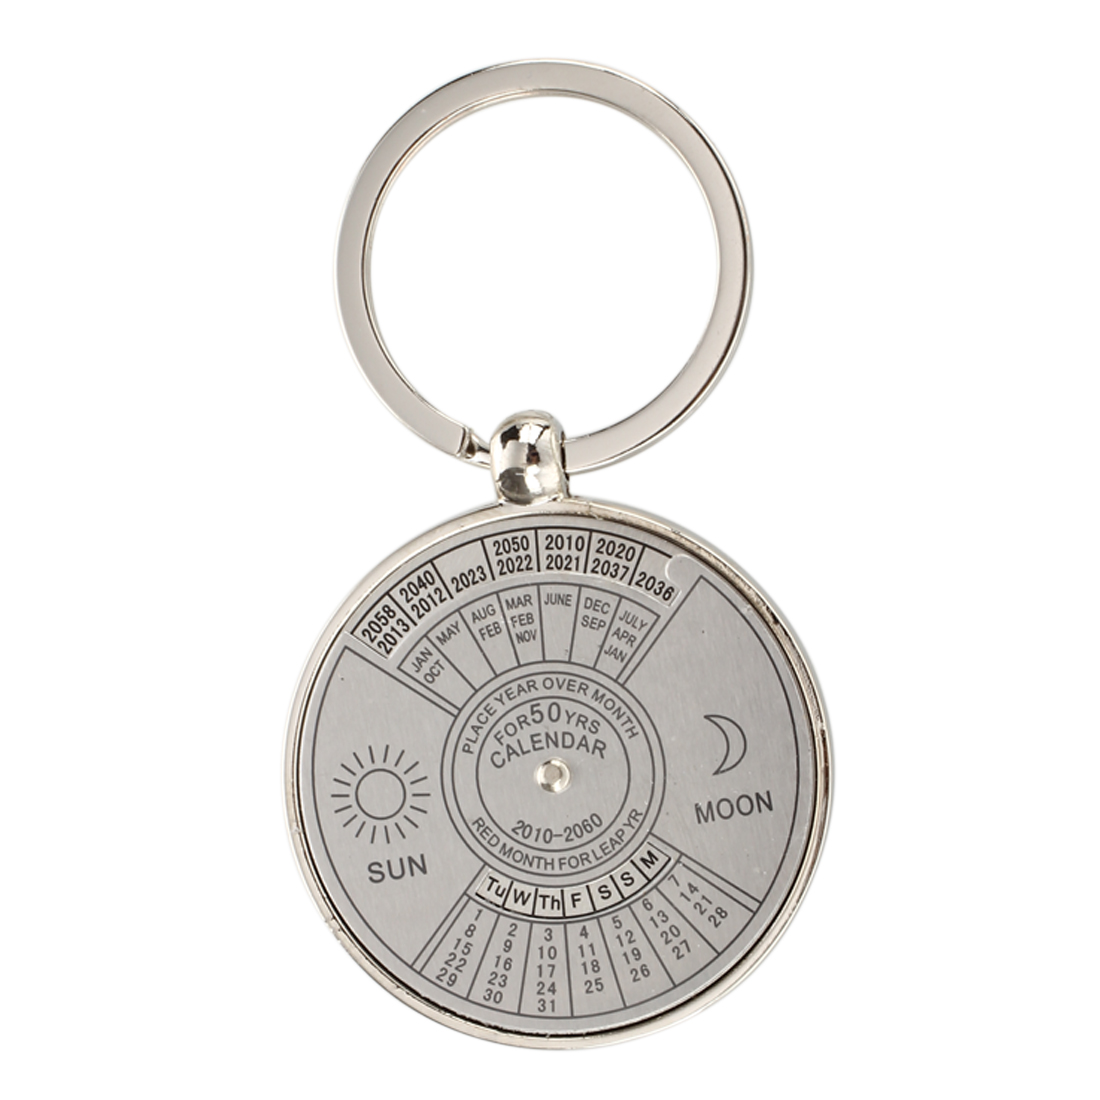 5pack Keychain key ring metal Perpetual Calendar pattern 50 years perpetual calendar keyring keychain silver alloy key ring keyfob decoration 8ou9